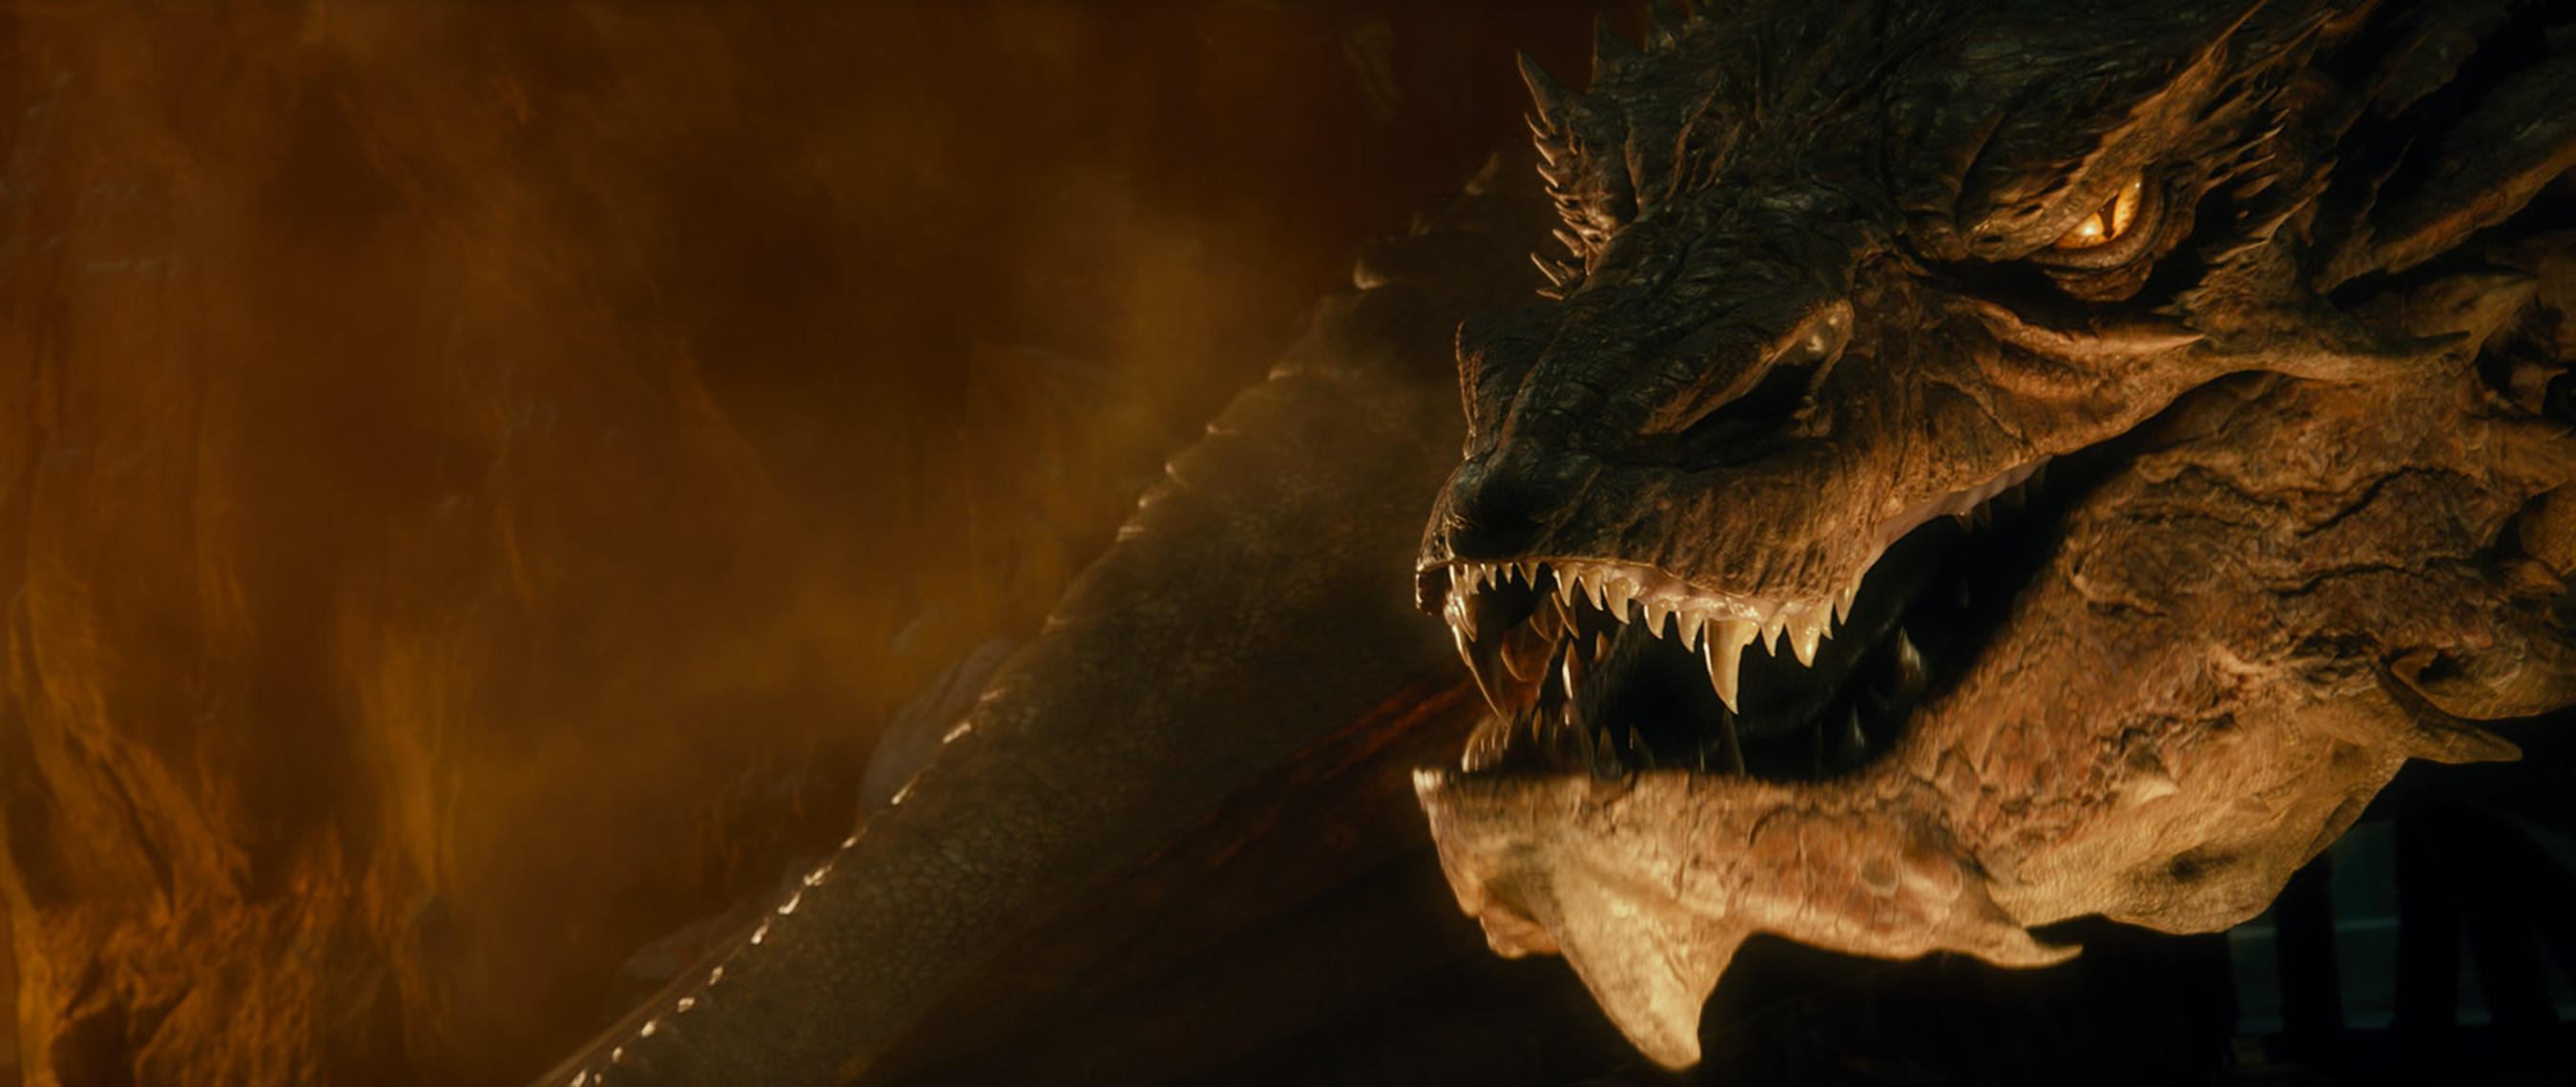 http://arda.ir/wp-content/uploads/2014/02/Smaug_the_Terrible.jpeg?a05db7